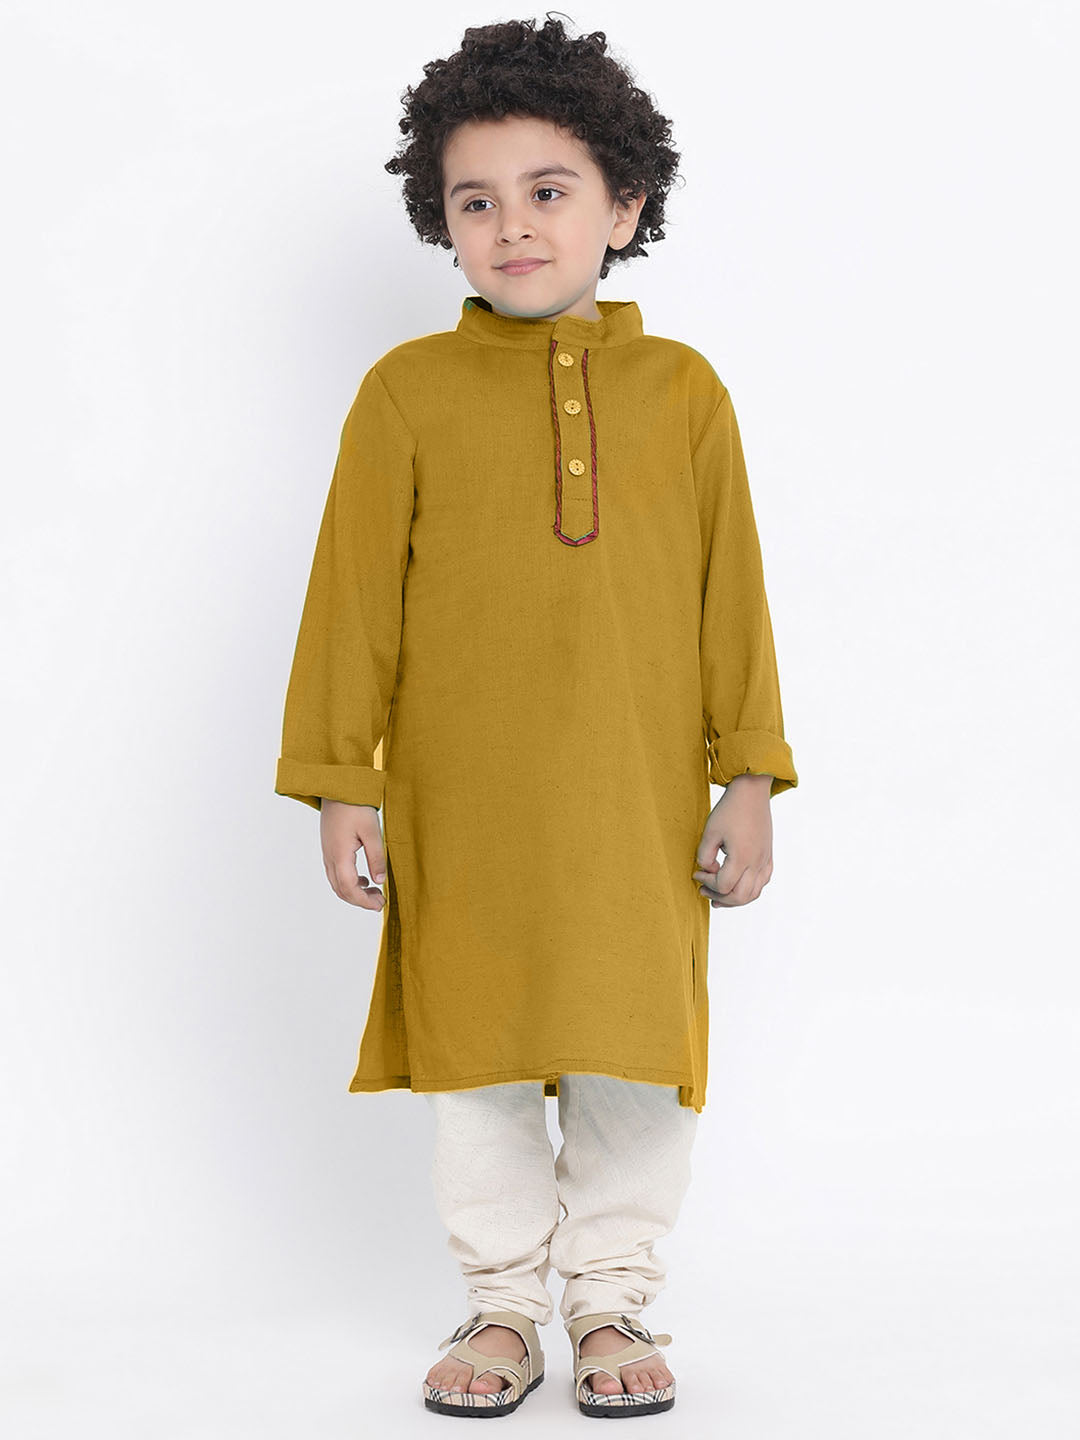 Karan4 Kurta Pajam For Boys